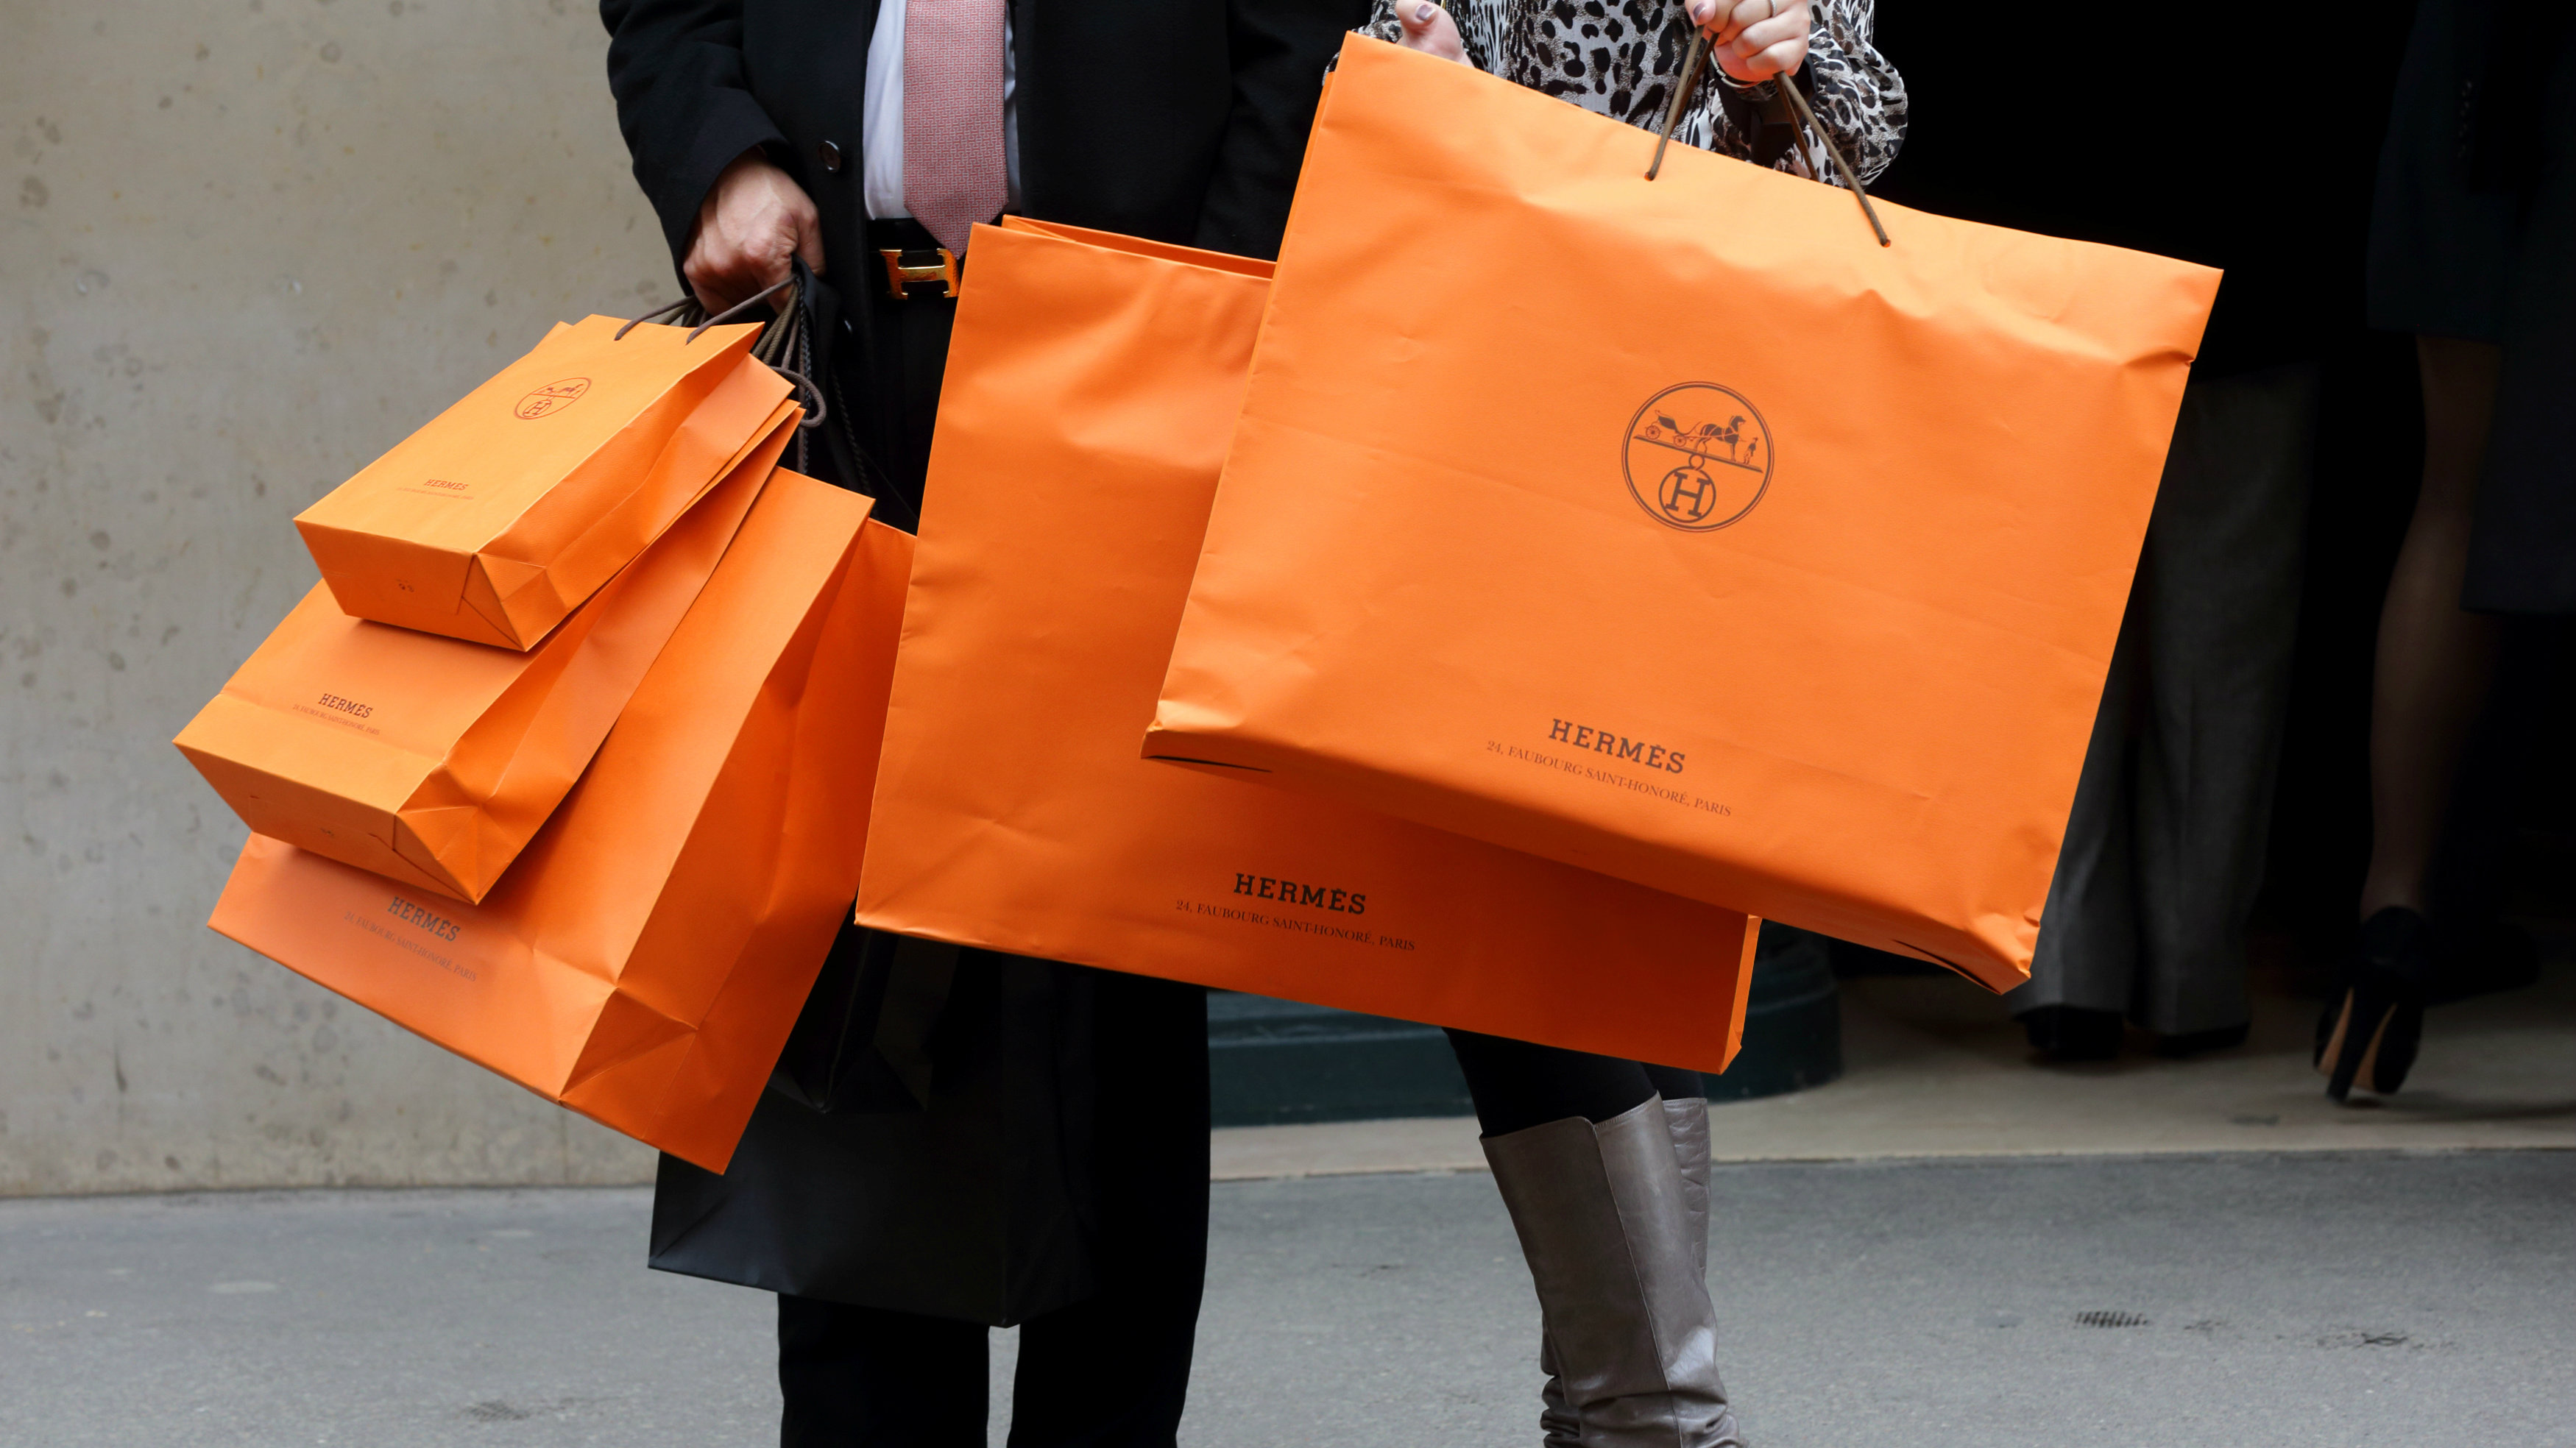 A couple walk with Hermes shopping bags as they leave a Hermes store in Paris, France, March 21, 2013. REUTERS/Philippe Wojazer/File Photo